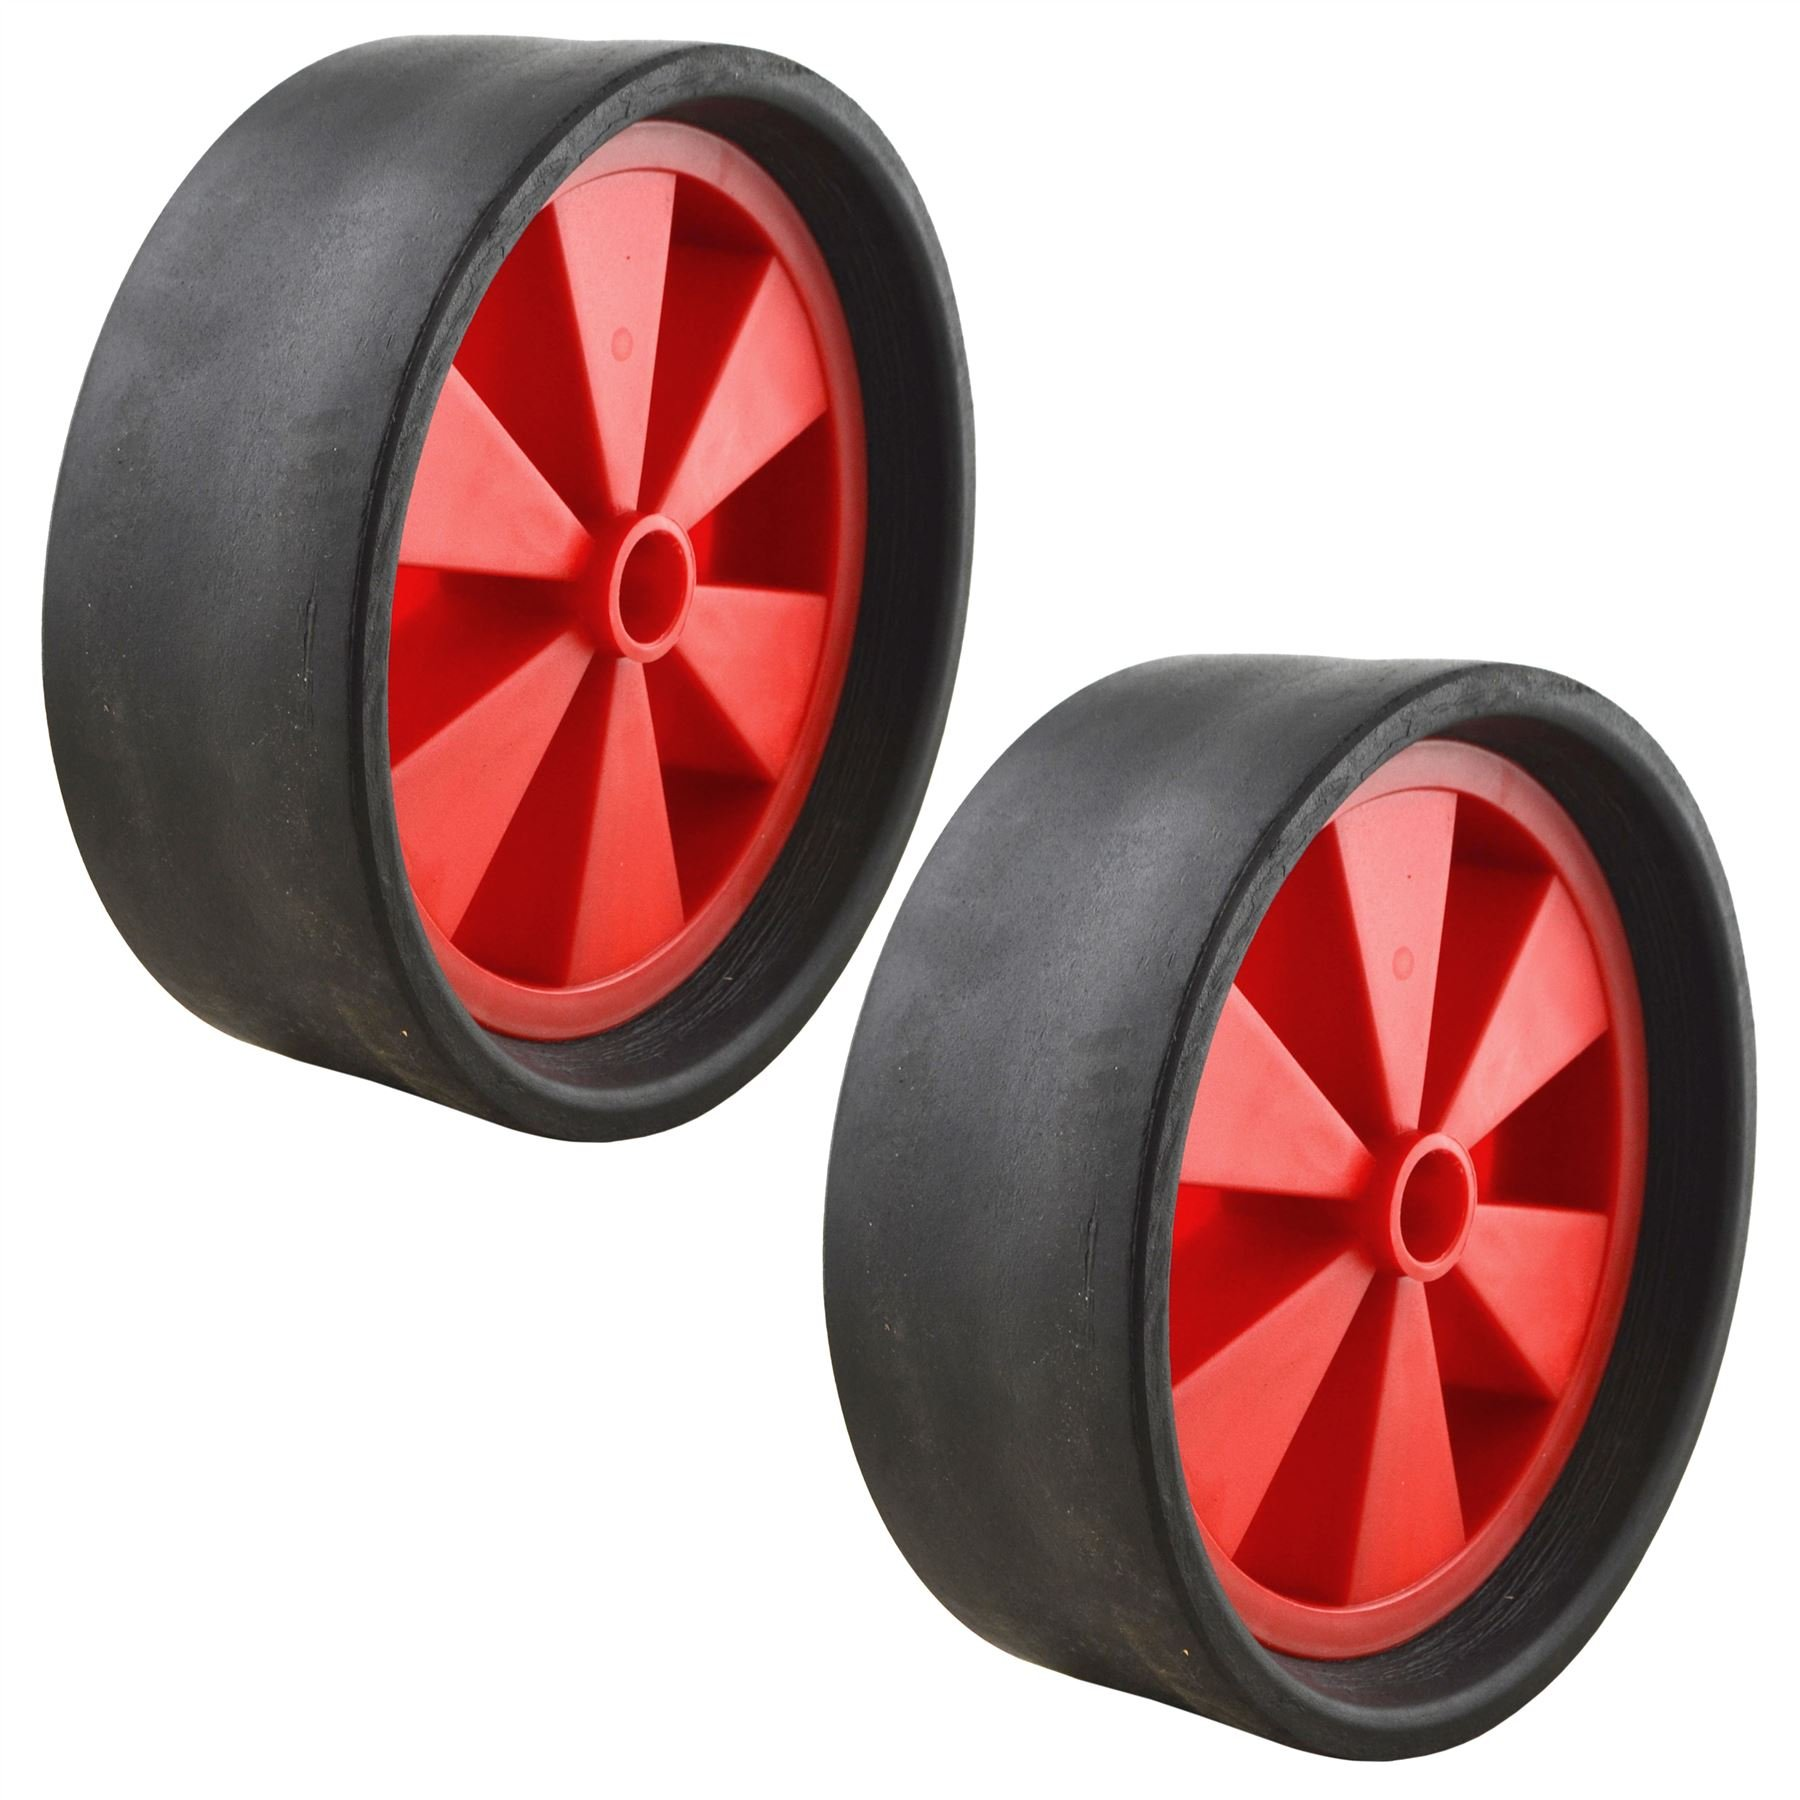 """AB Tools Dinghy Boat Launch Trolley Wheels 10"""" Sand Hopper Solid Rubber Tyre x 2 (Pair)"""